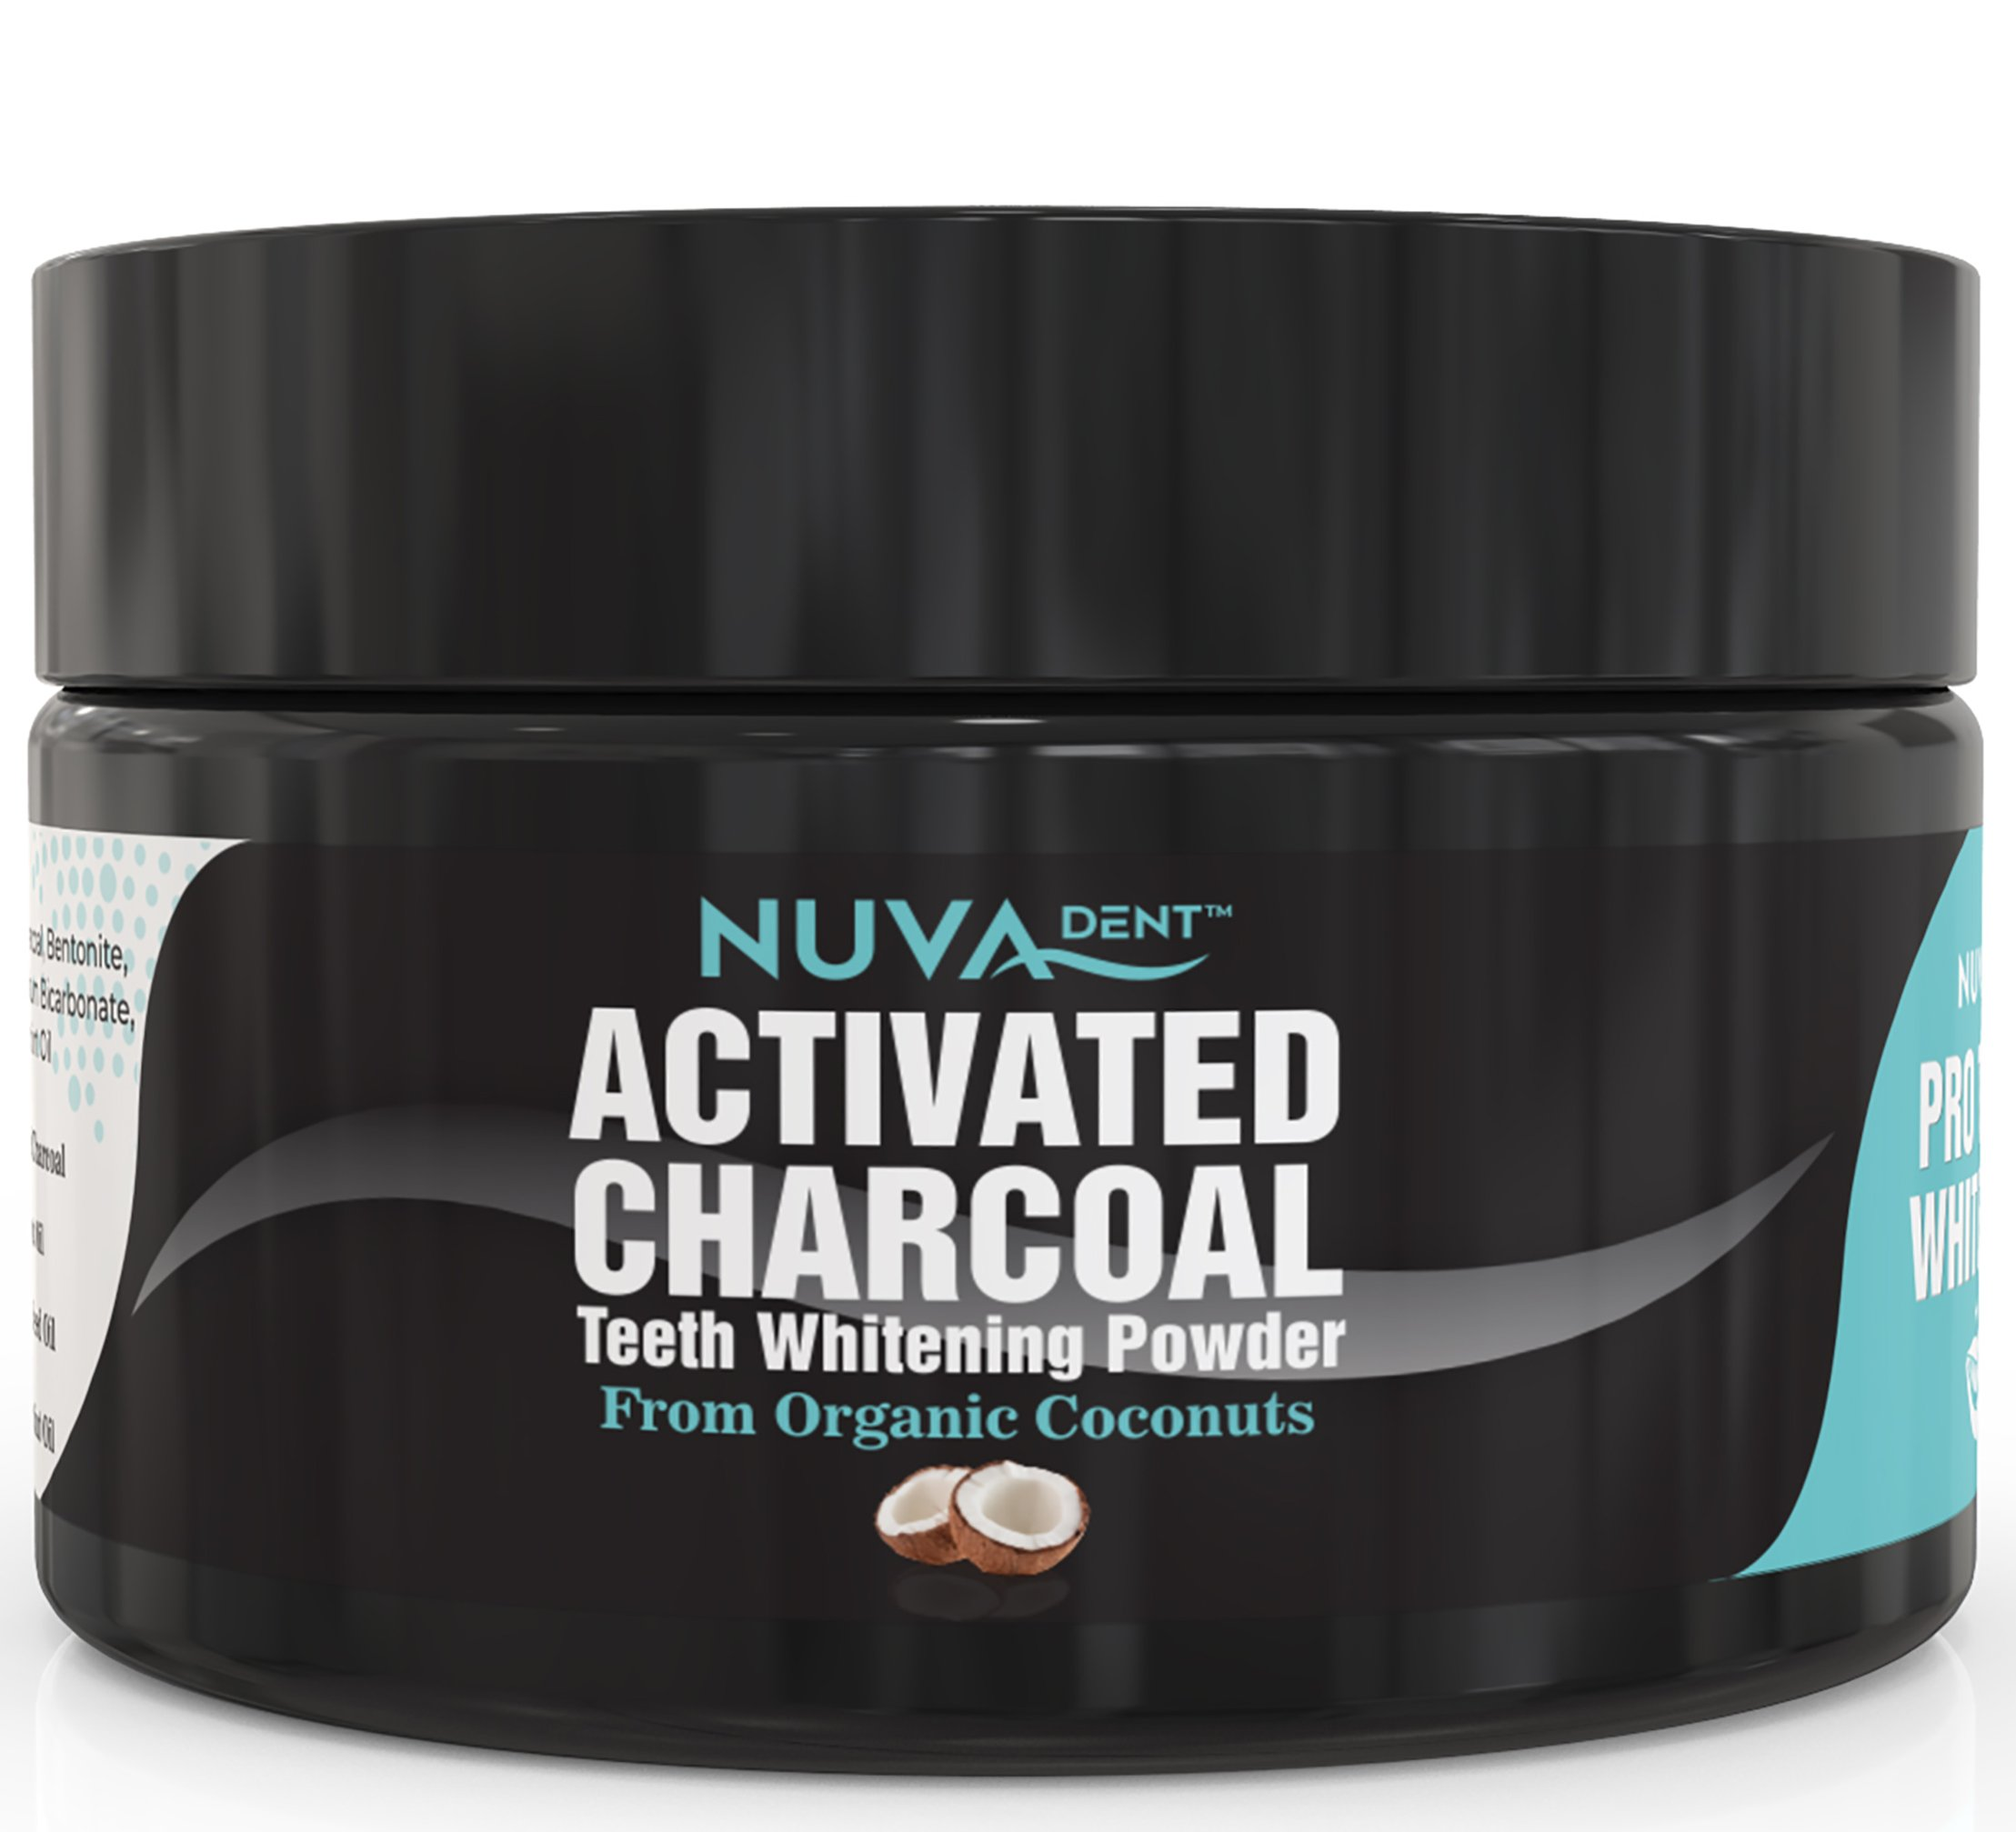 BEST DEAL Activated Charcoal Teeth Whitening Powder - Organic Coconut Charcoal - Carbon Coco - Removes Bad Breath and Tooth Stains for a Natural Healthier Whiter Smile - No Need for Strips, Kit or Gel